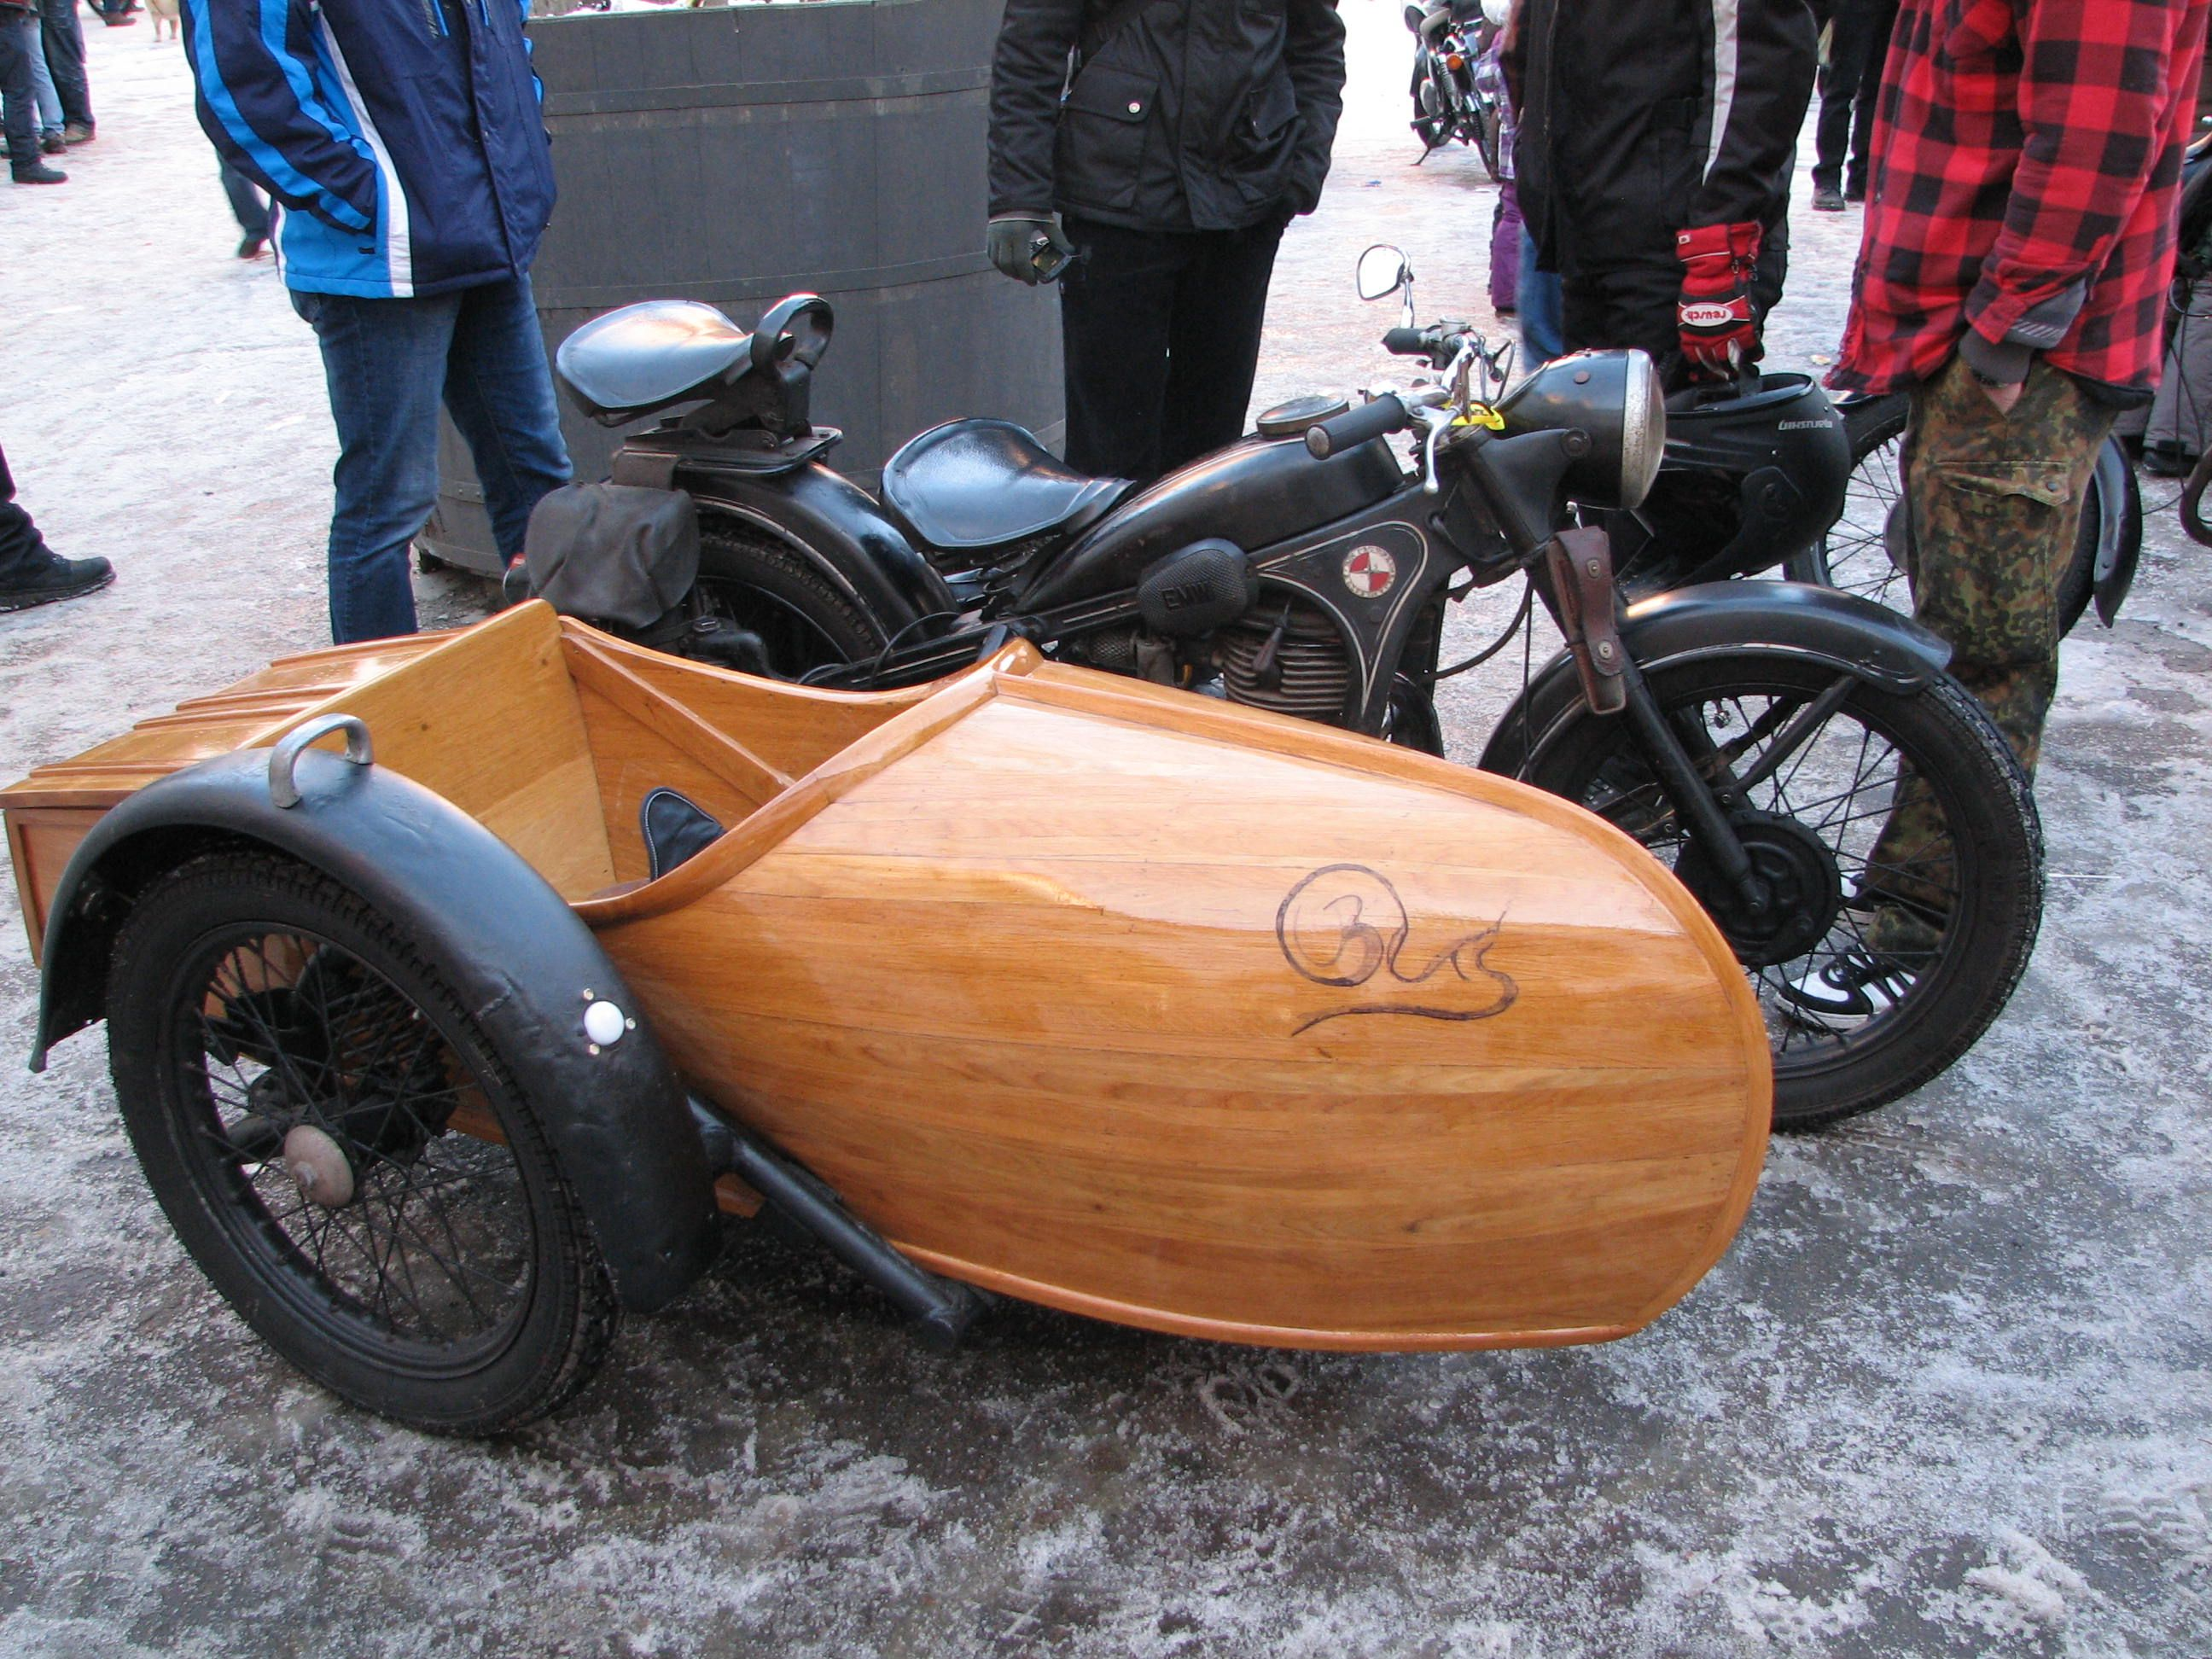 Wooden Side Car Photo By Dennis Crowder With Images Bike